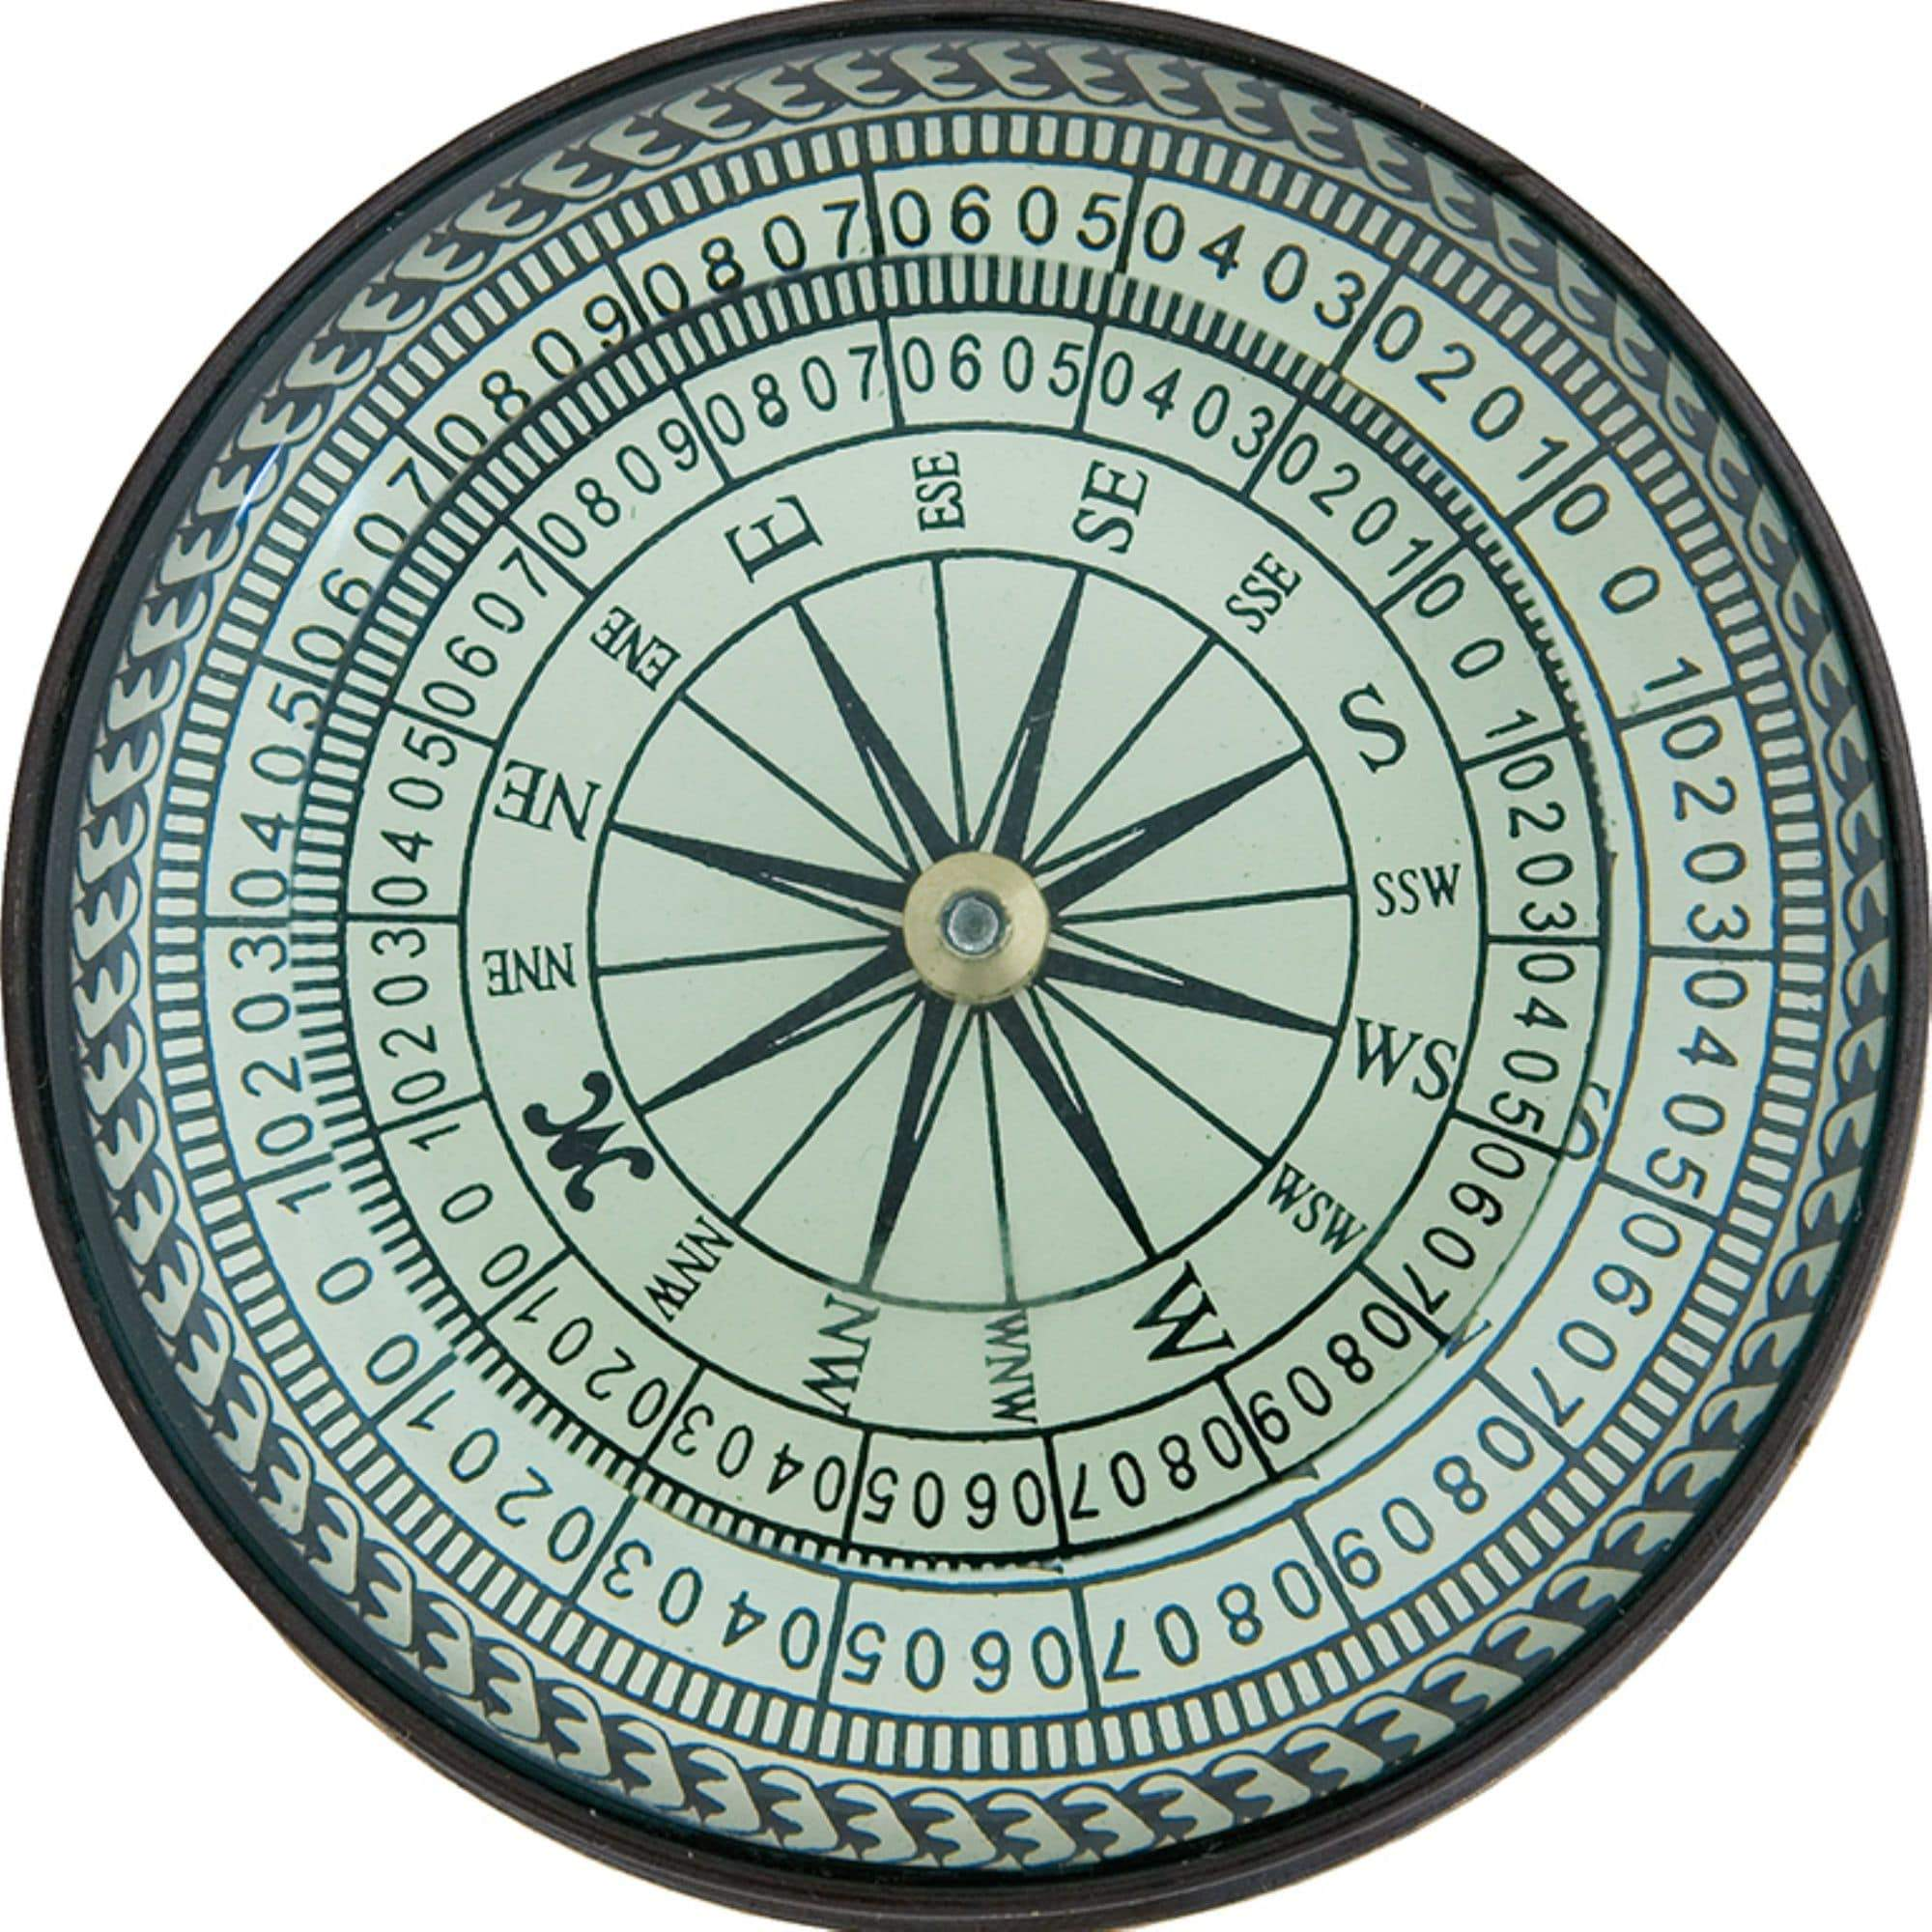 Batela Giftware-Nautical Office Decoration-Compass with Magnifying Glass